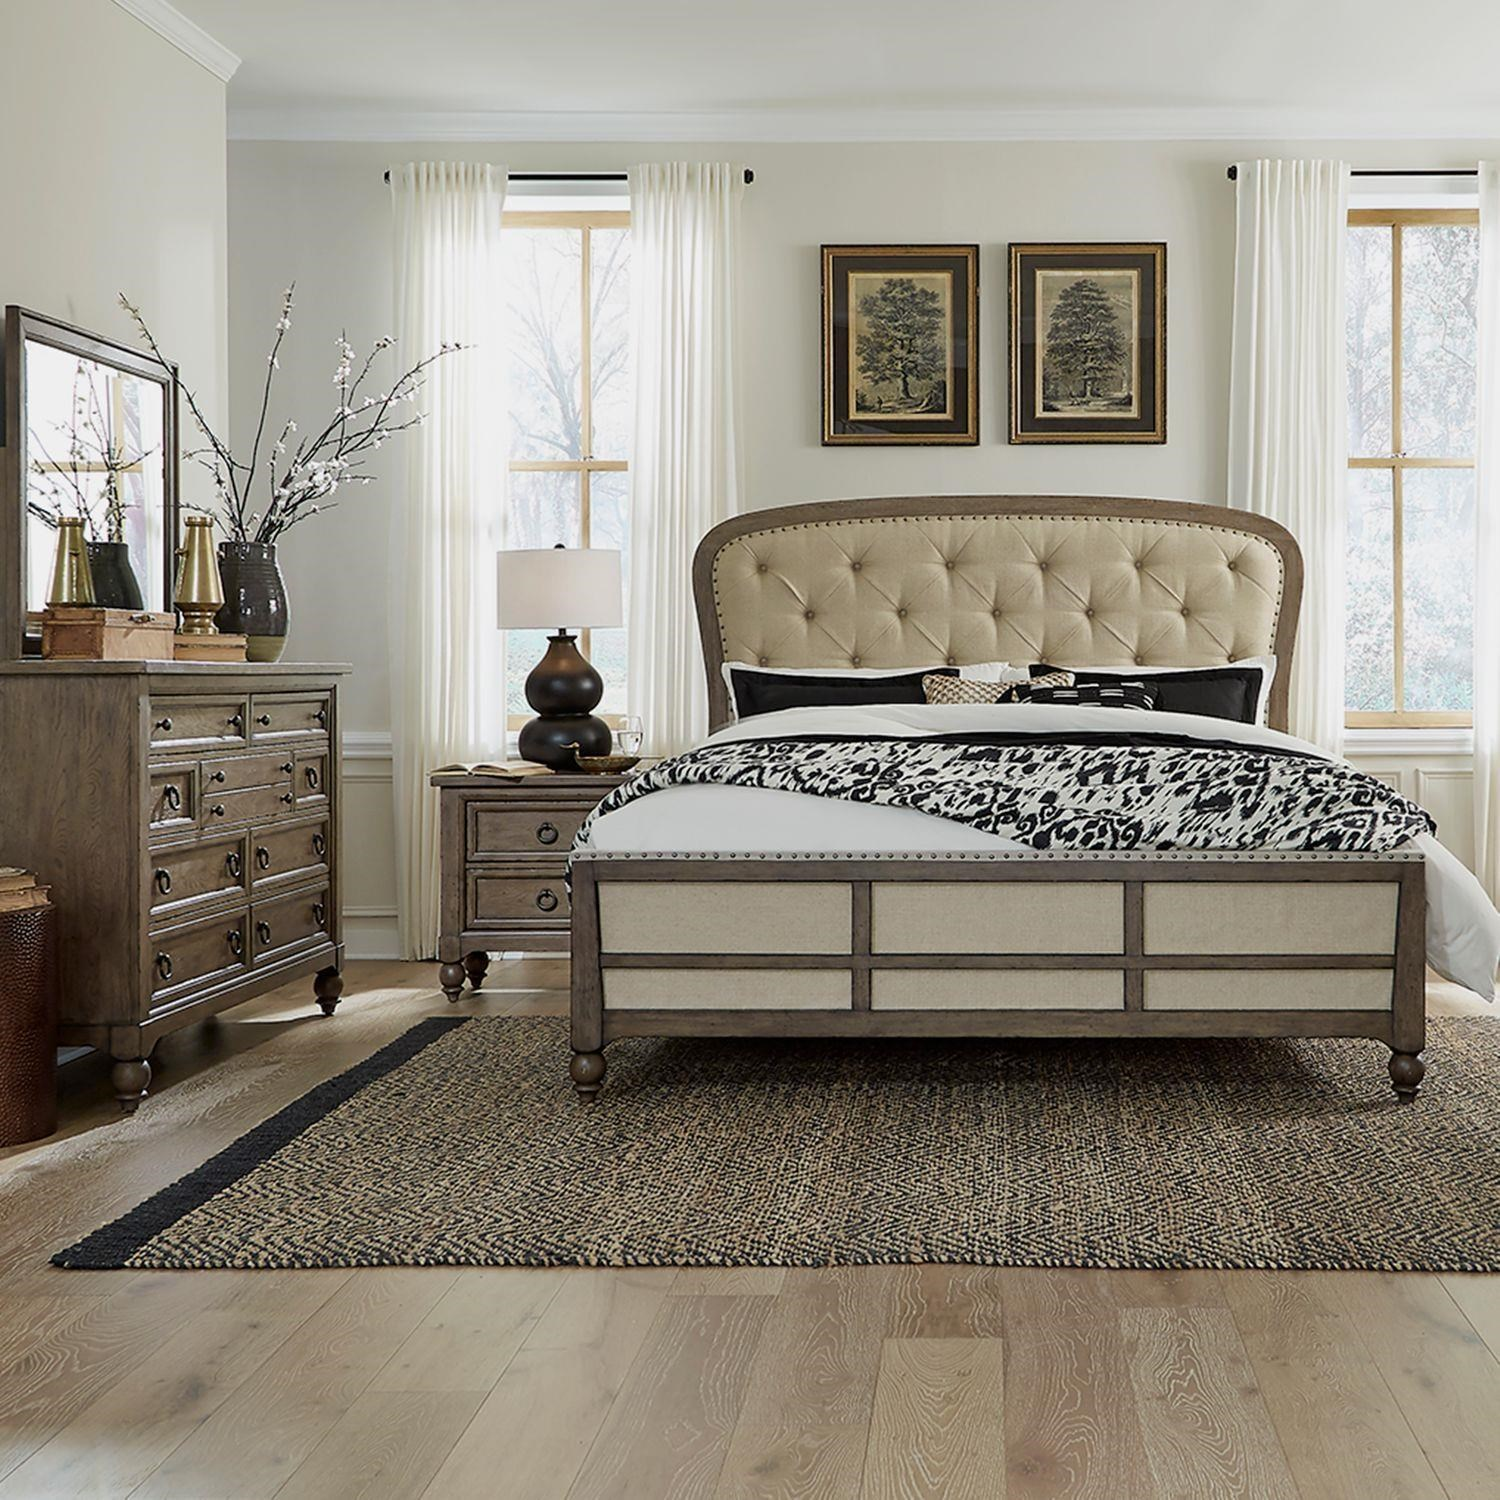 Americana Farmhouse Queen Tufted Bed Dresser, Mirror, Nightstand by Liberty Furniture at Johnny Janosik